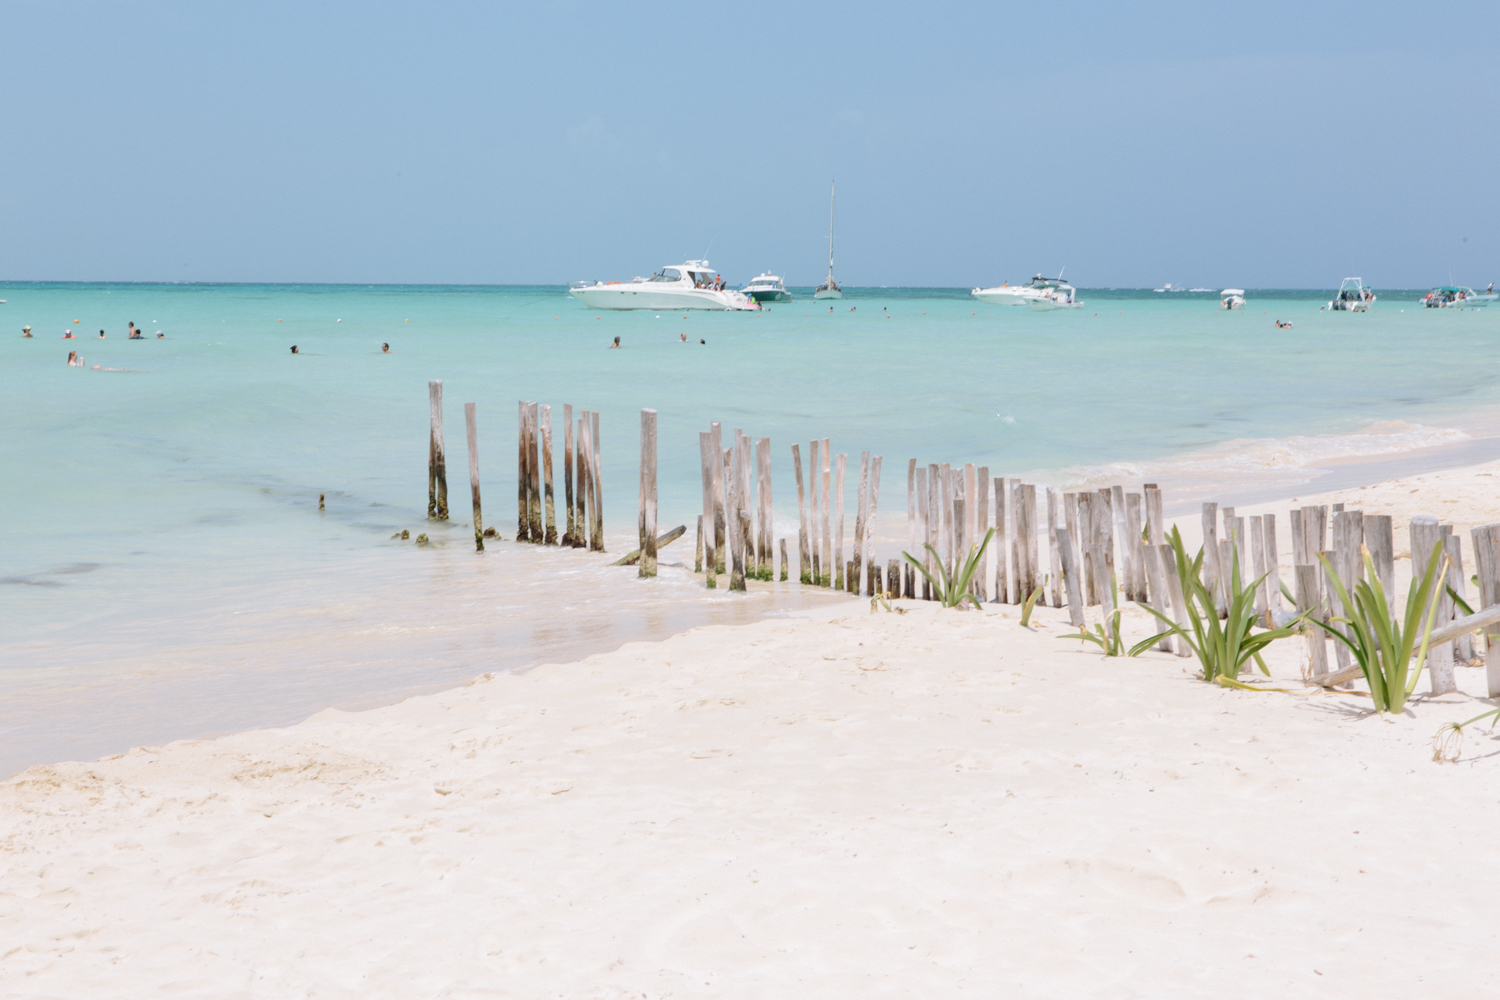 Crystal clear waters and powder-white sand, enjoyed by tourists and locals together.